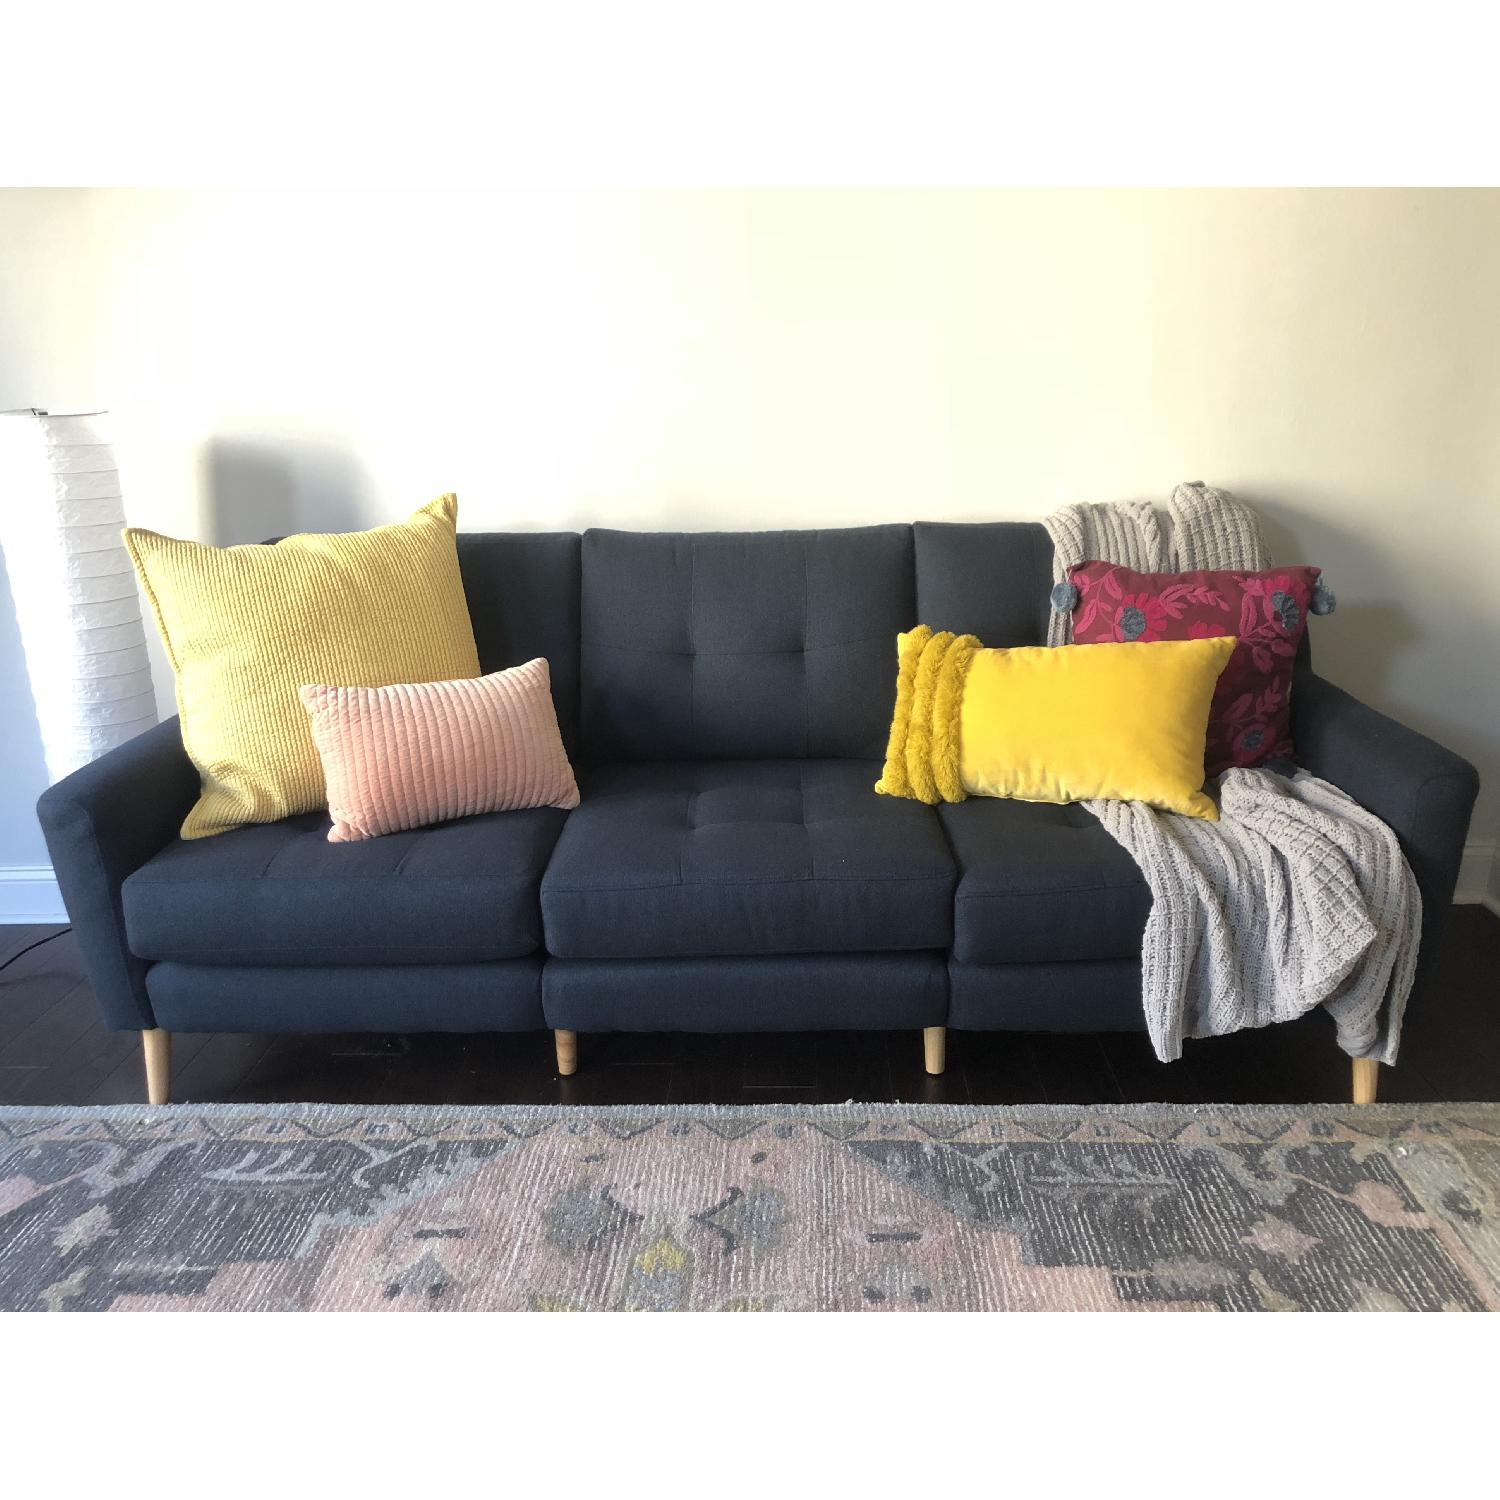 Burrow Nomad Sectional Sofa w/ Chaise - image-1